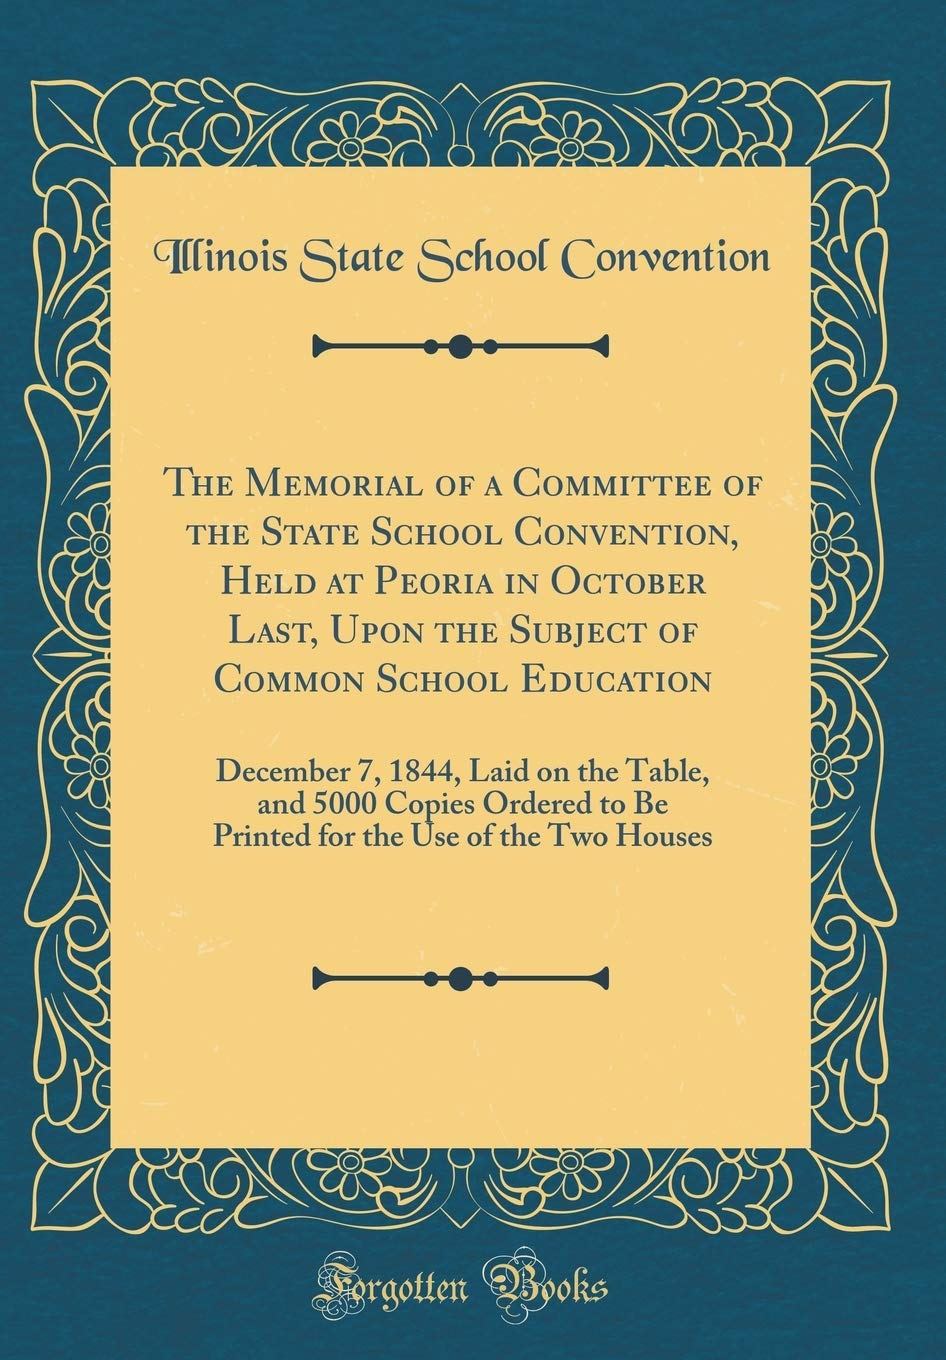 Download The Memorial of a Committee of the State School Convention, Held at Peoria in October Last, Upon the Subject of Common School Education: December 7, ... to Be Printed for the Use of the Two Houses PDF